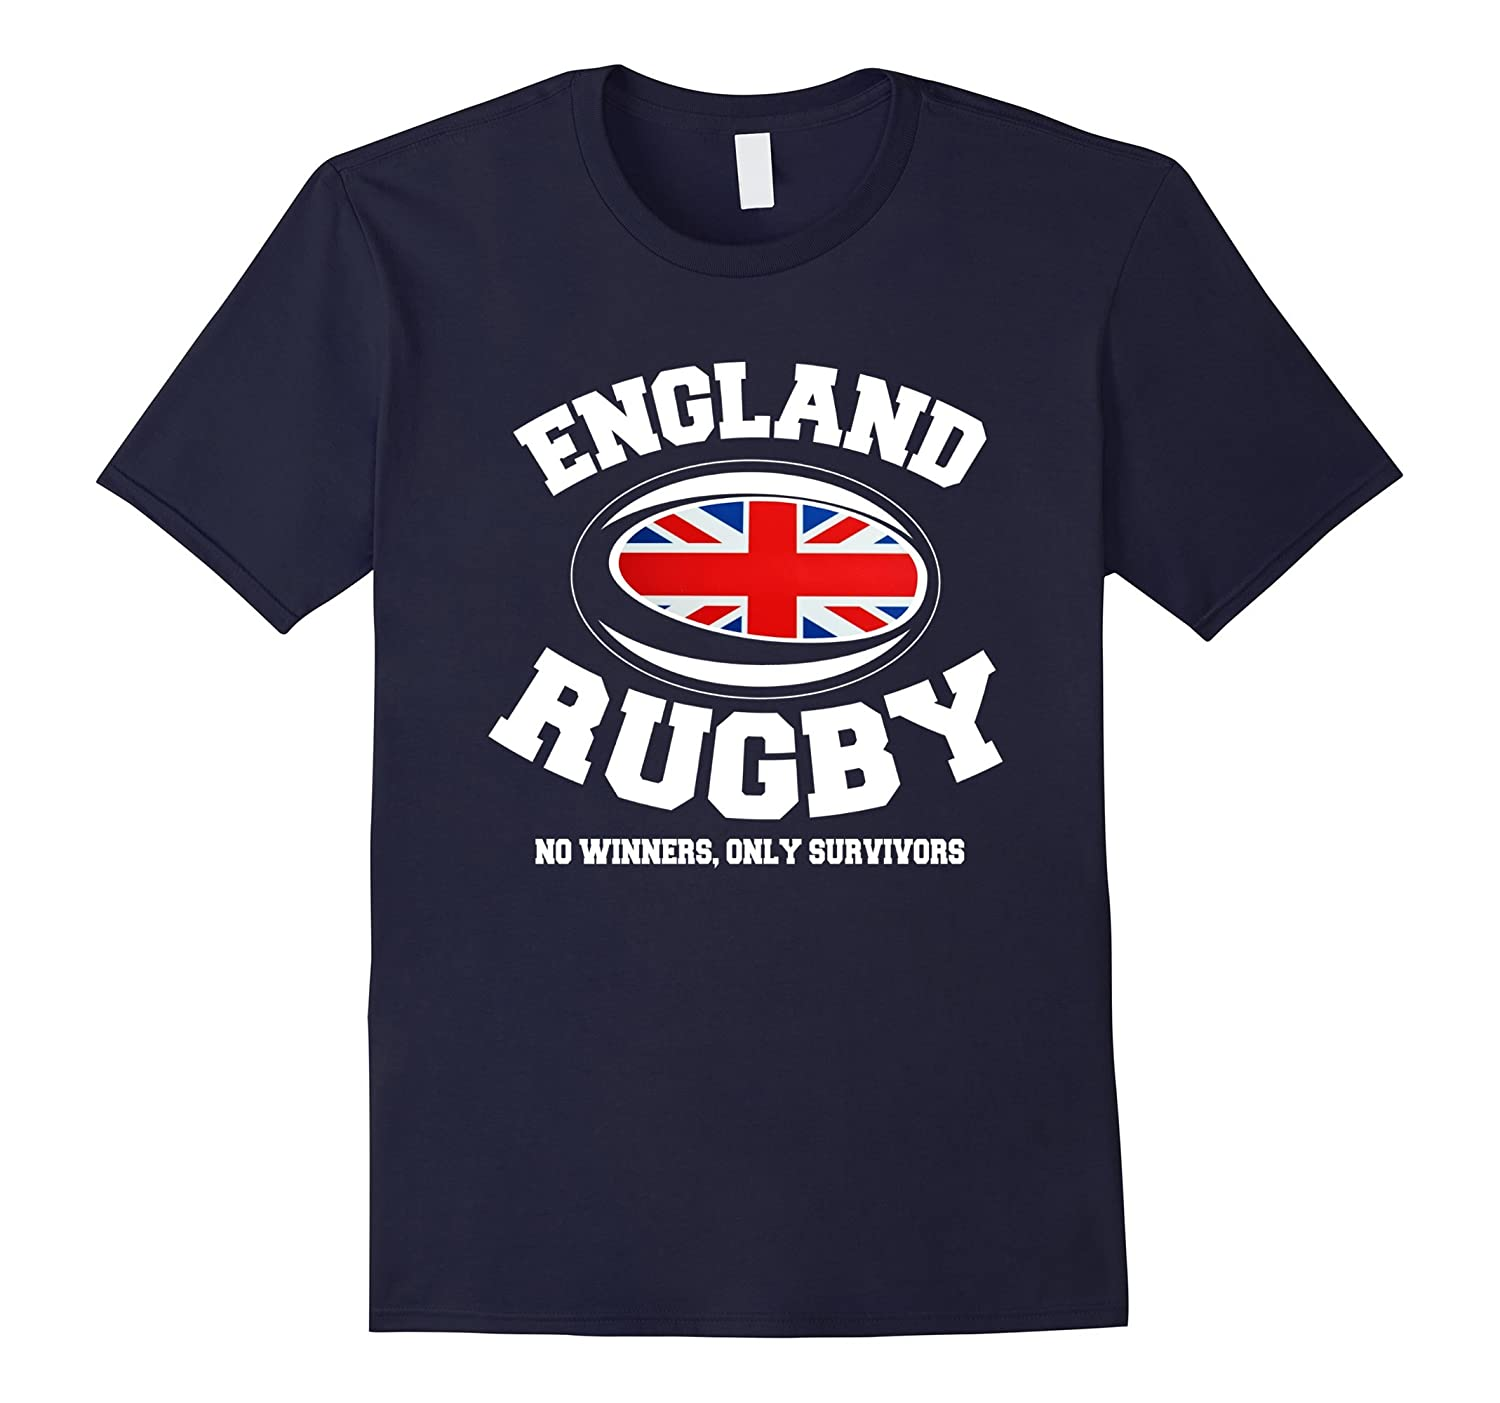 England Rugby T-Shirt No Winner Only Survivors-Vaci